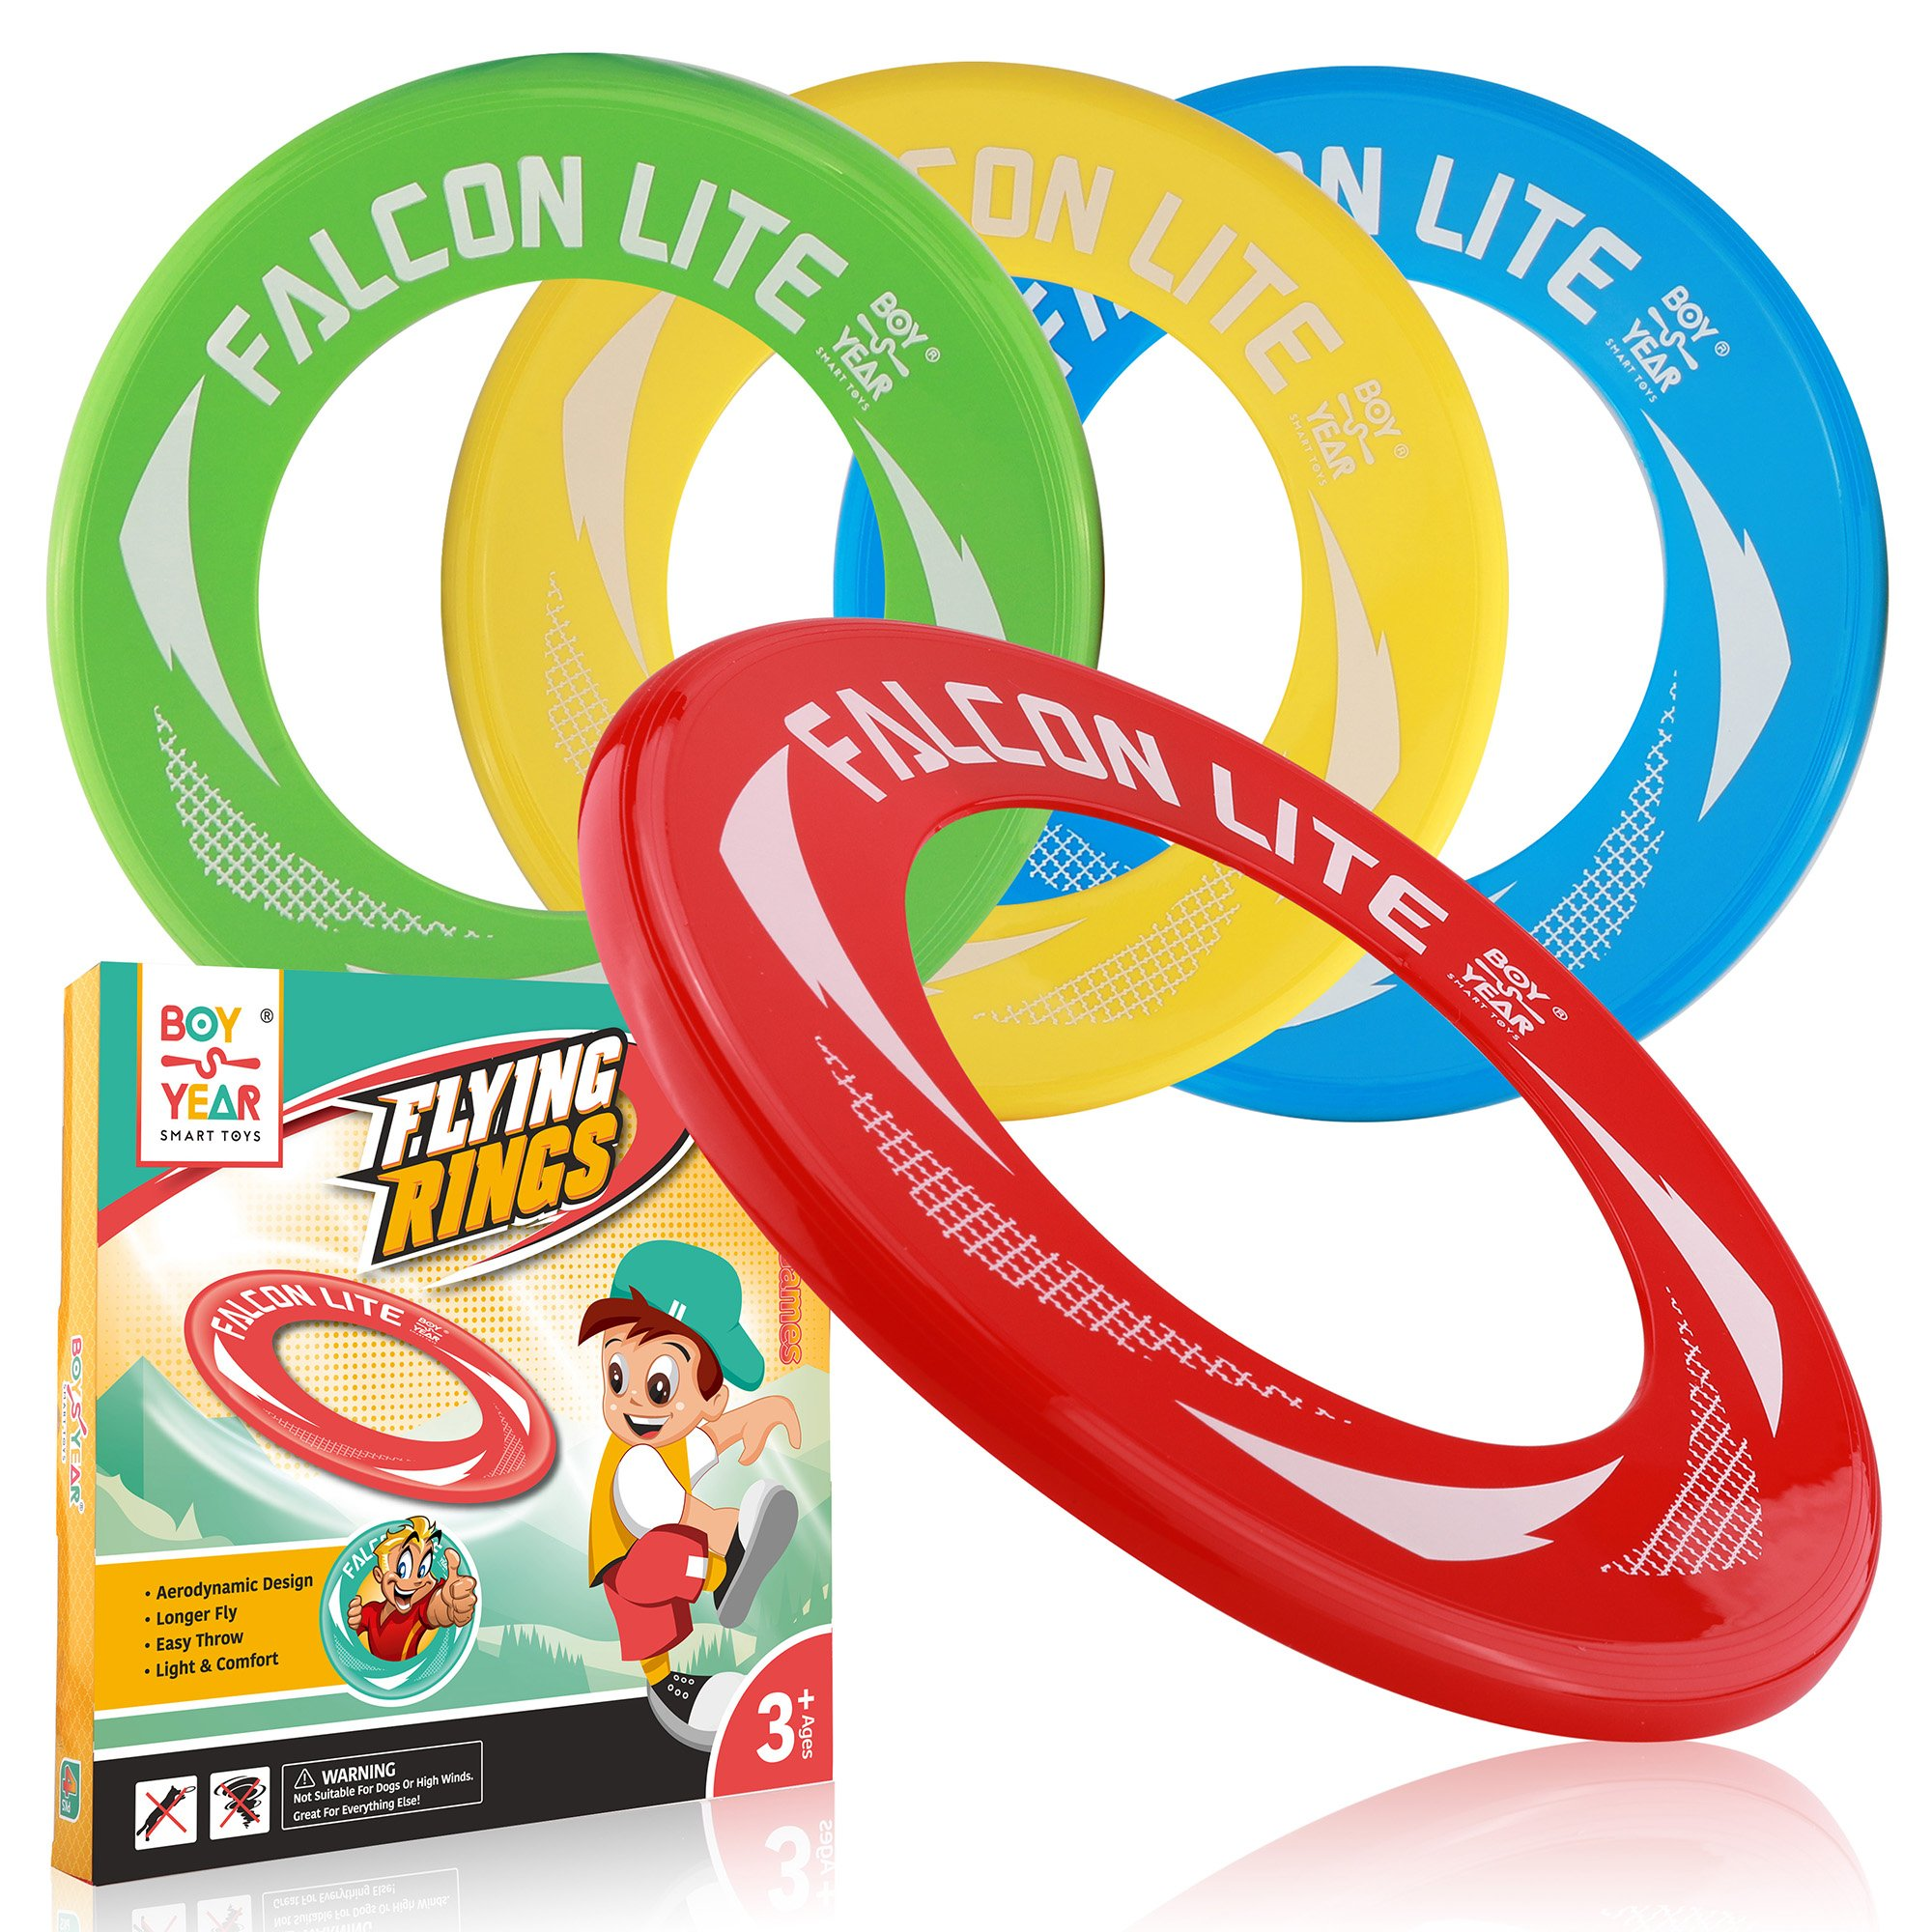 4-Pack Falcon Lite Flying Disc Rings - 2018 Hot Outdoors Game, Beach Games, Water - Summer Toys For Kids - Outdoor Gifts & Best Gift For Teen Boys, Girls & Adults by Boy-S-Year